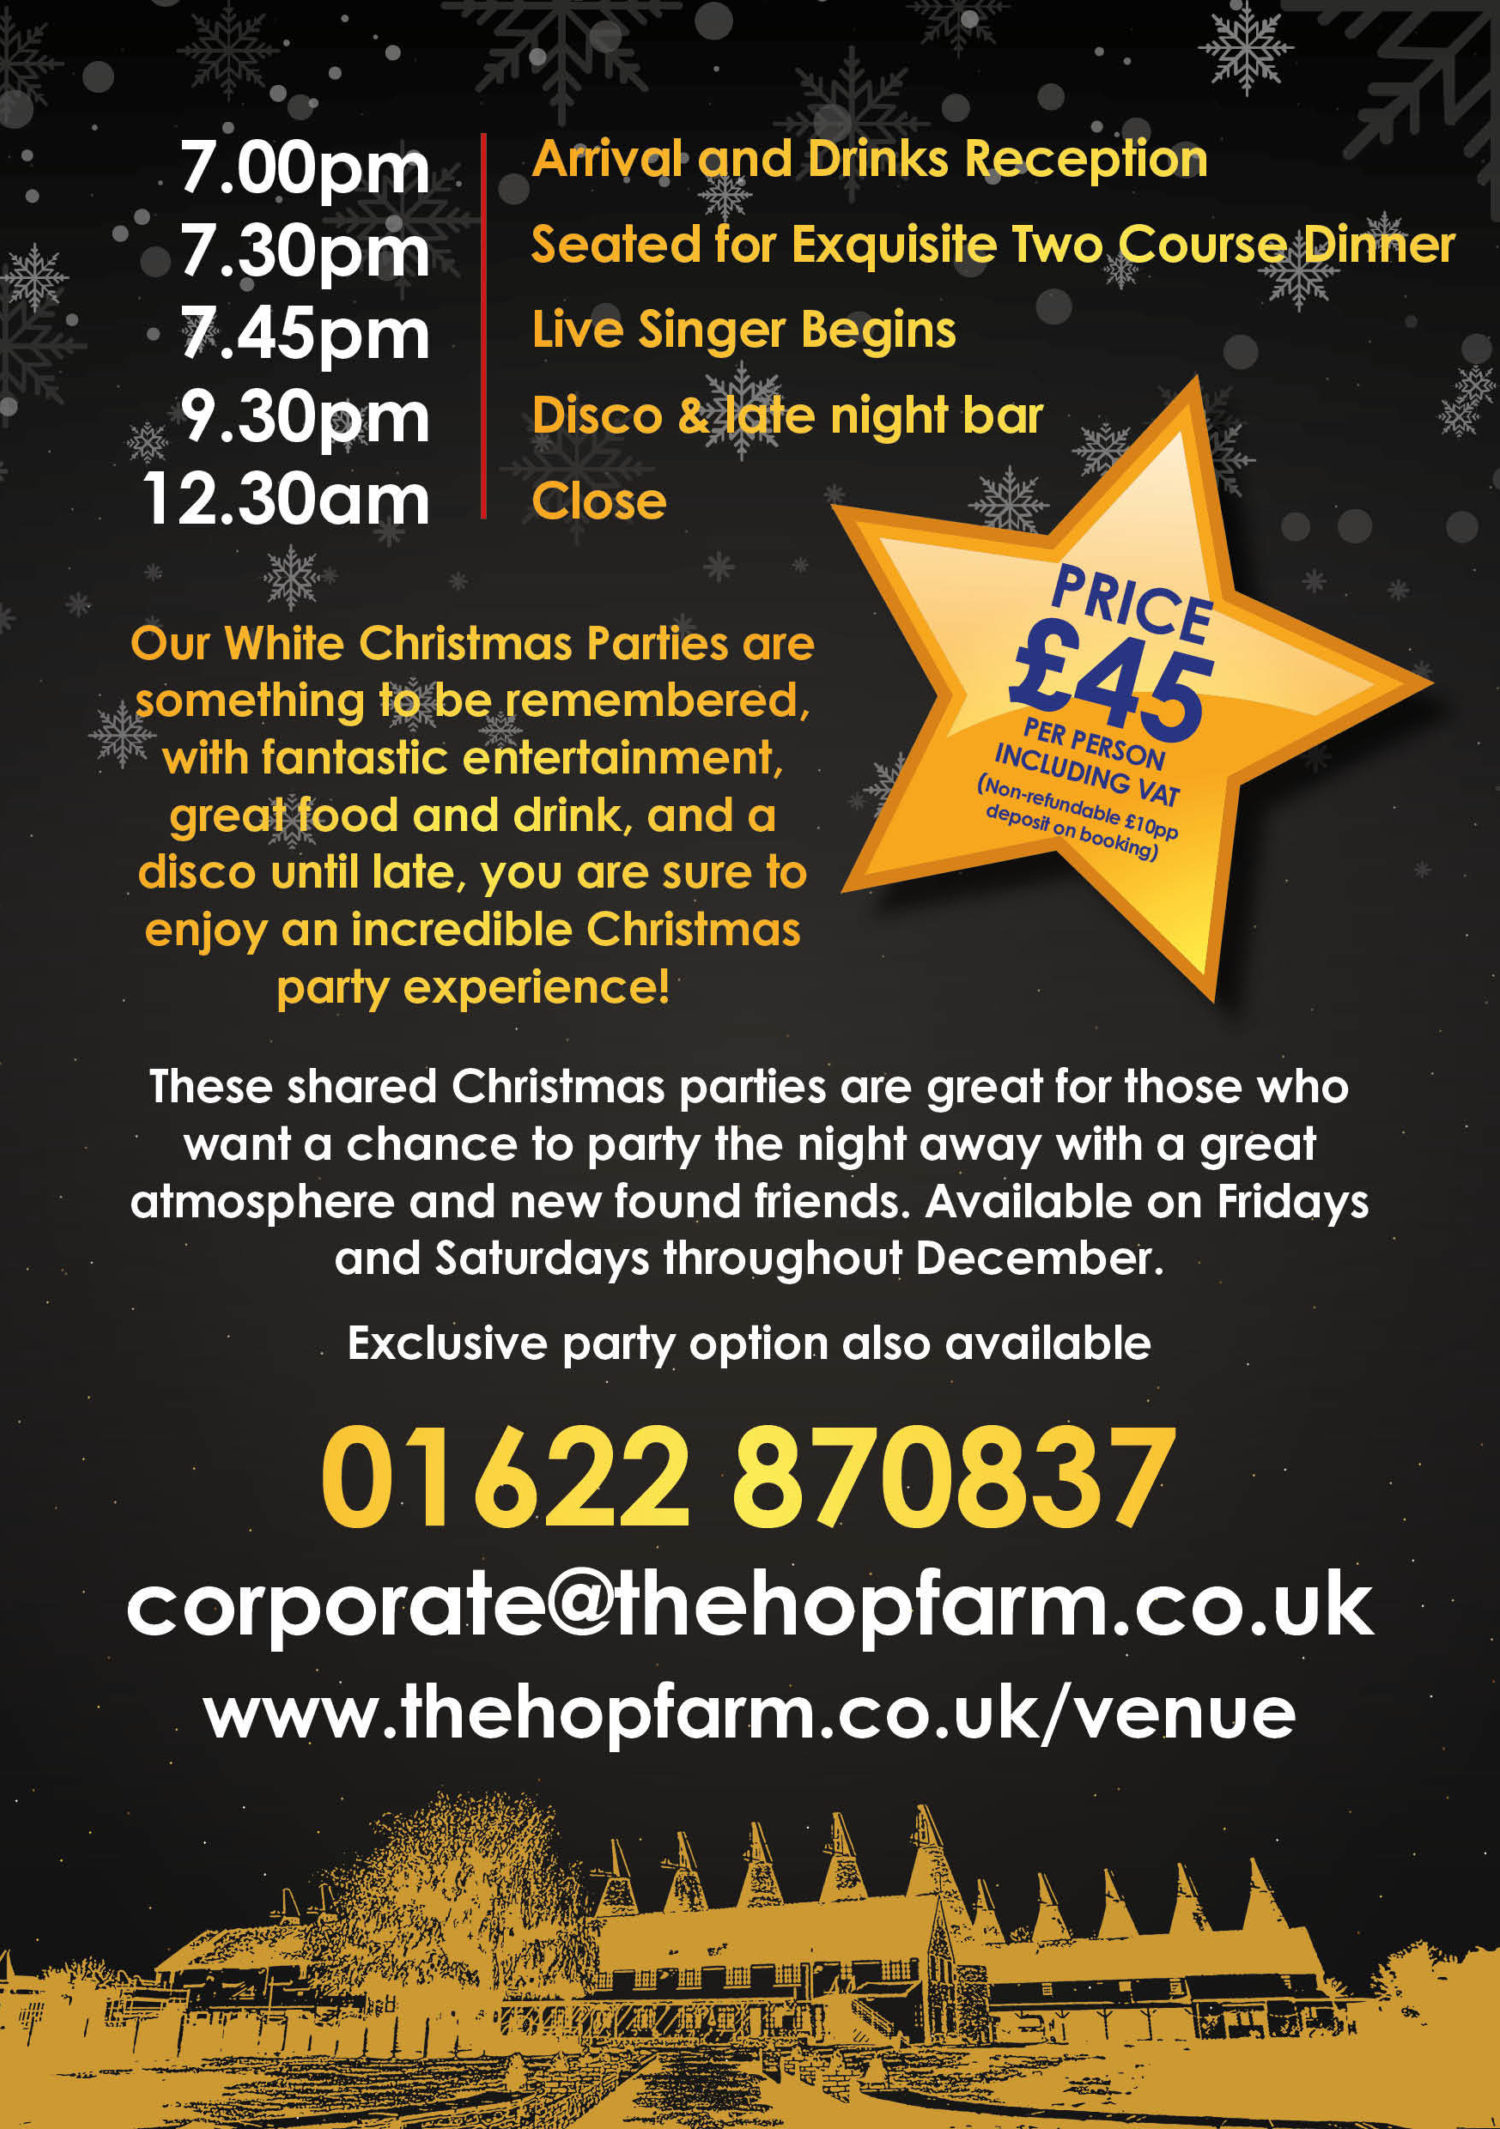 Hop Farm Christmas Parties A5 2Pp 2019 Shared2